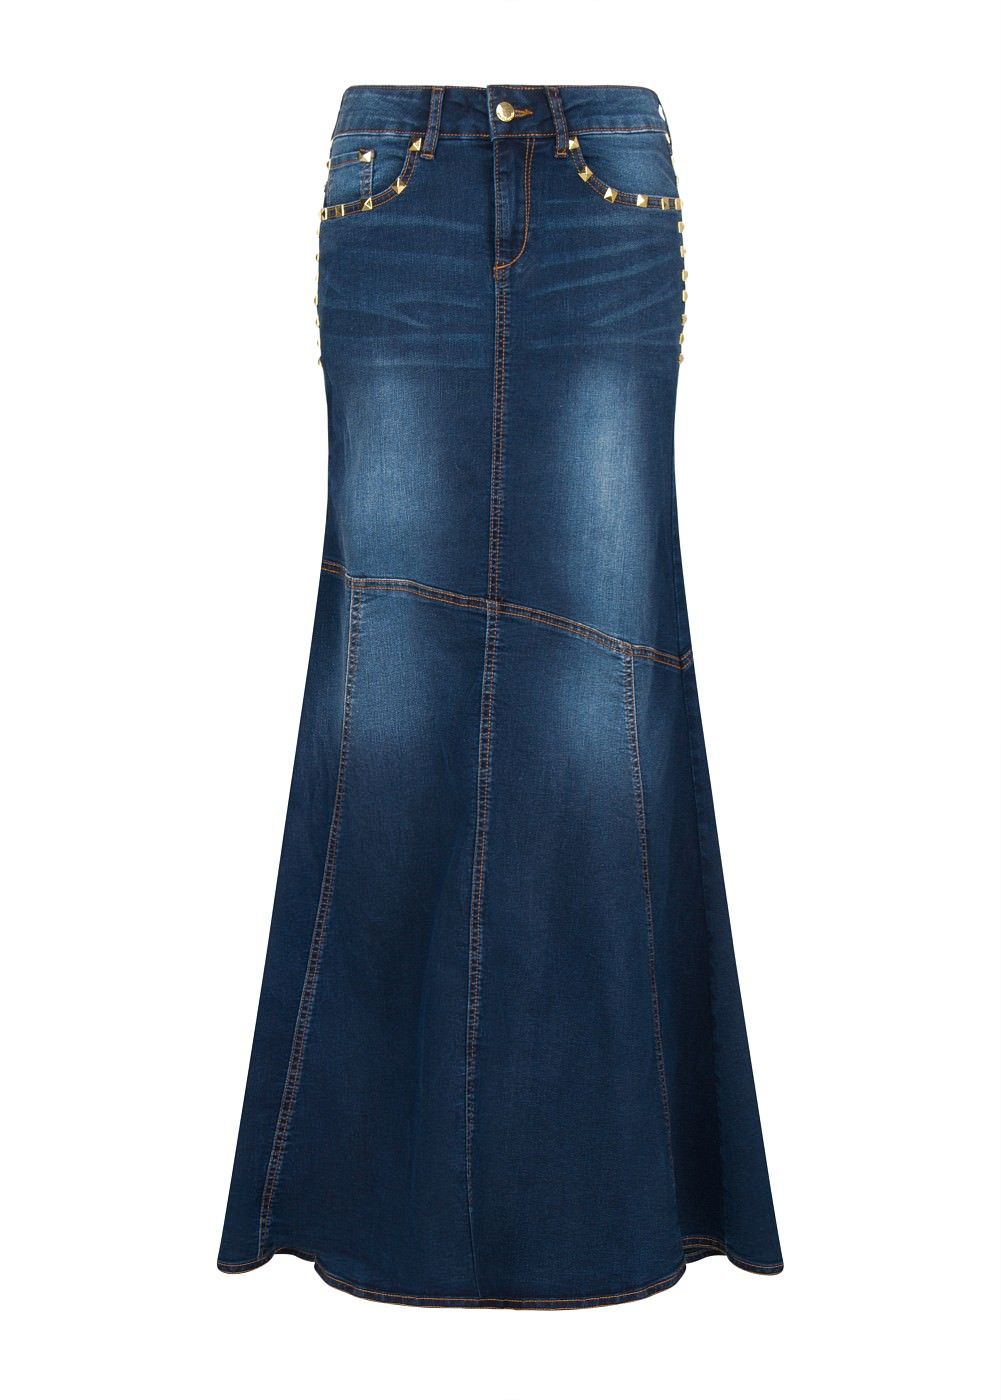 Jeans Id Faldas Stud WomenSkirts Wear Denim Skirt Largas 08nPwOk